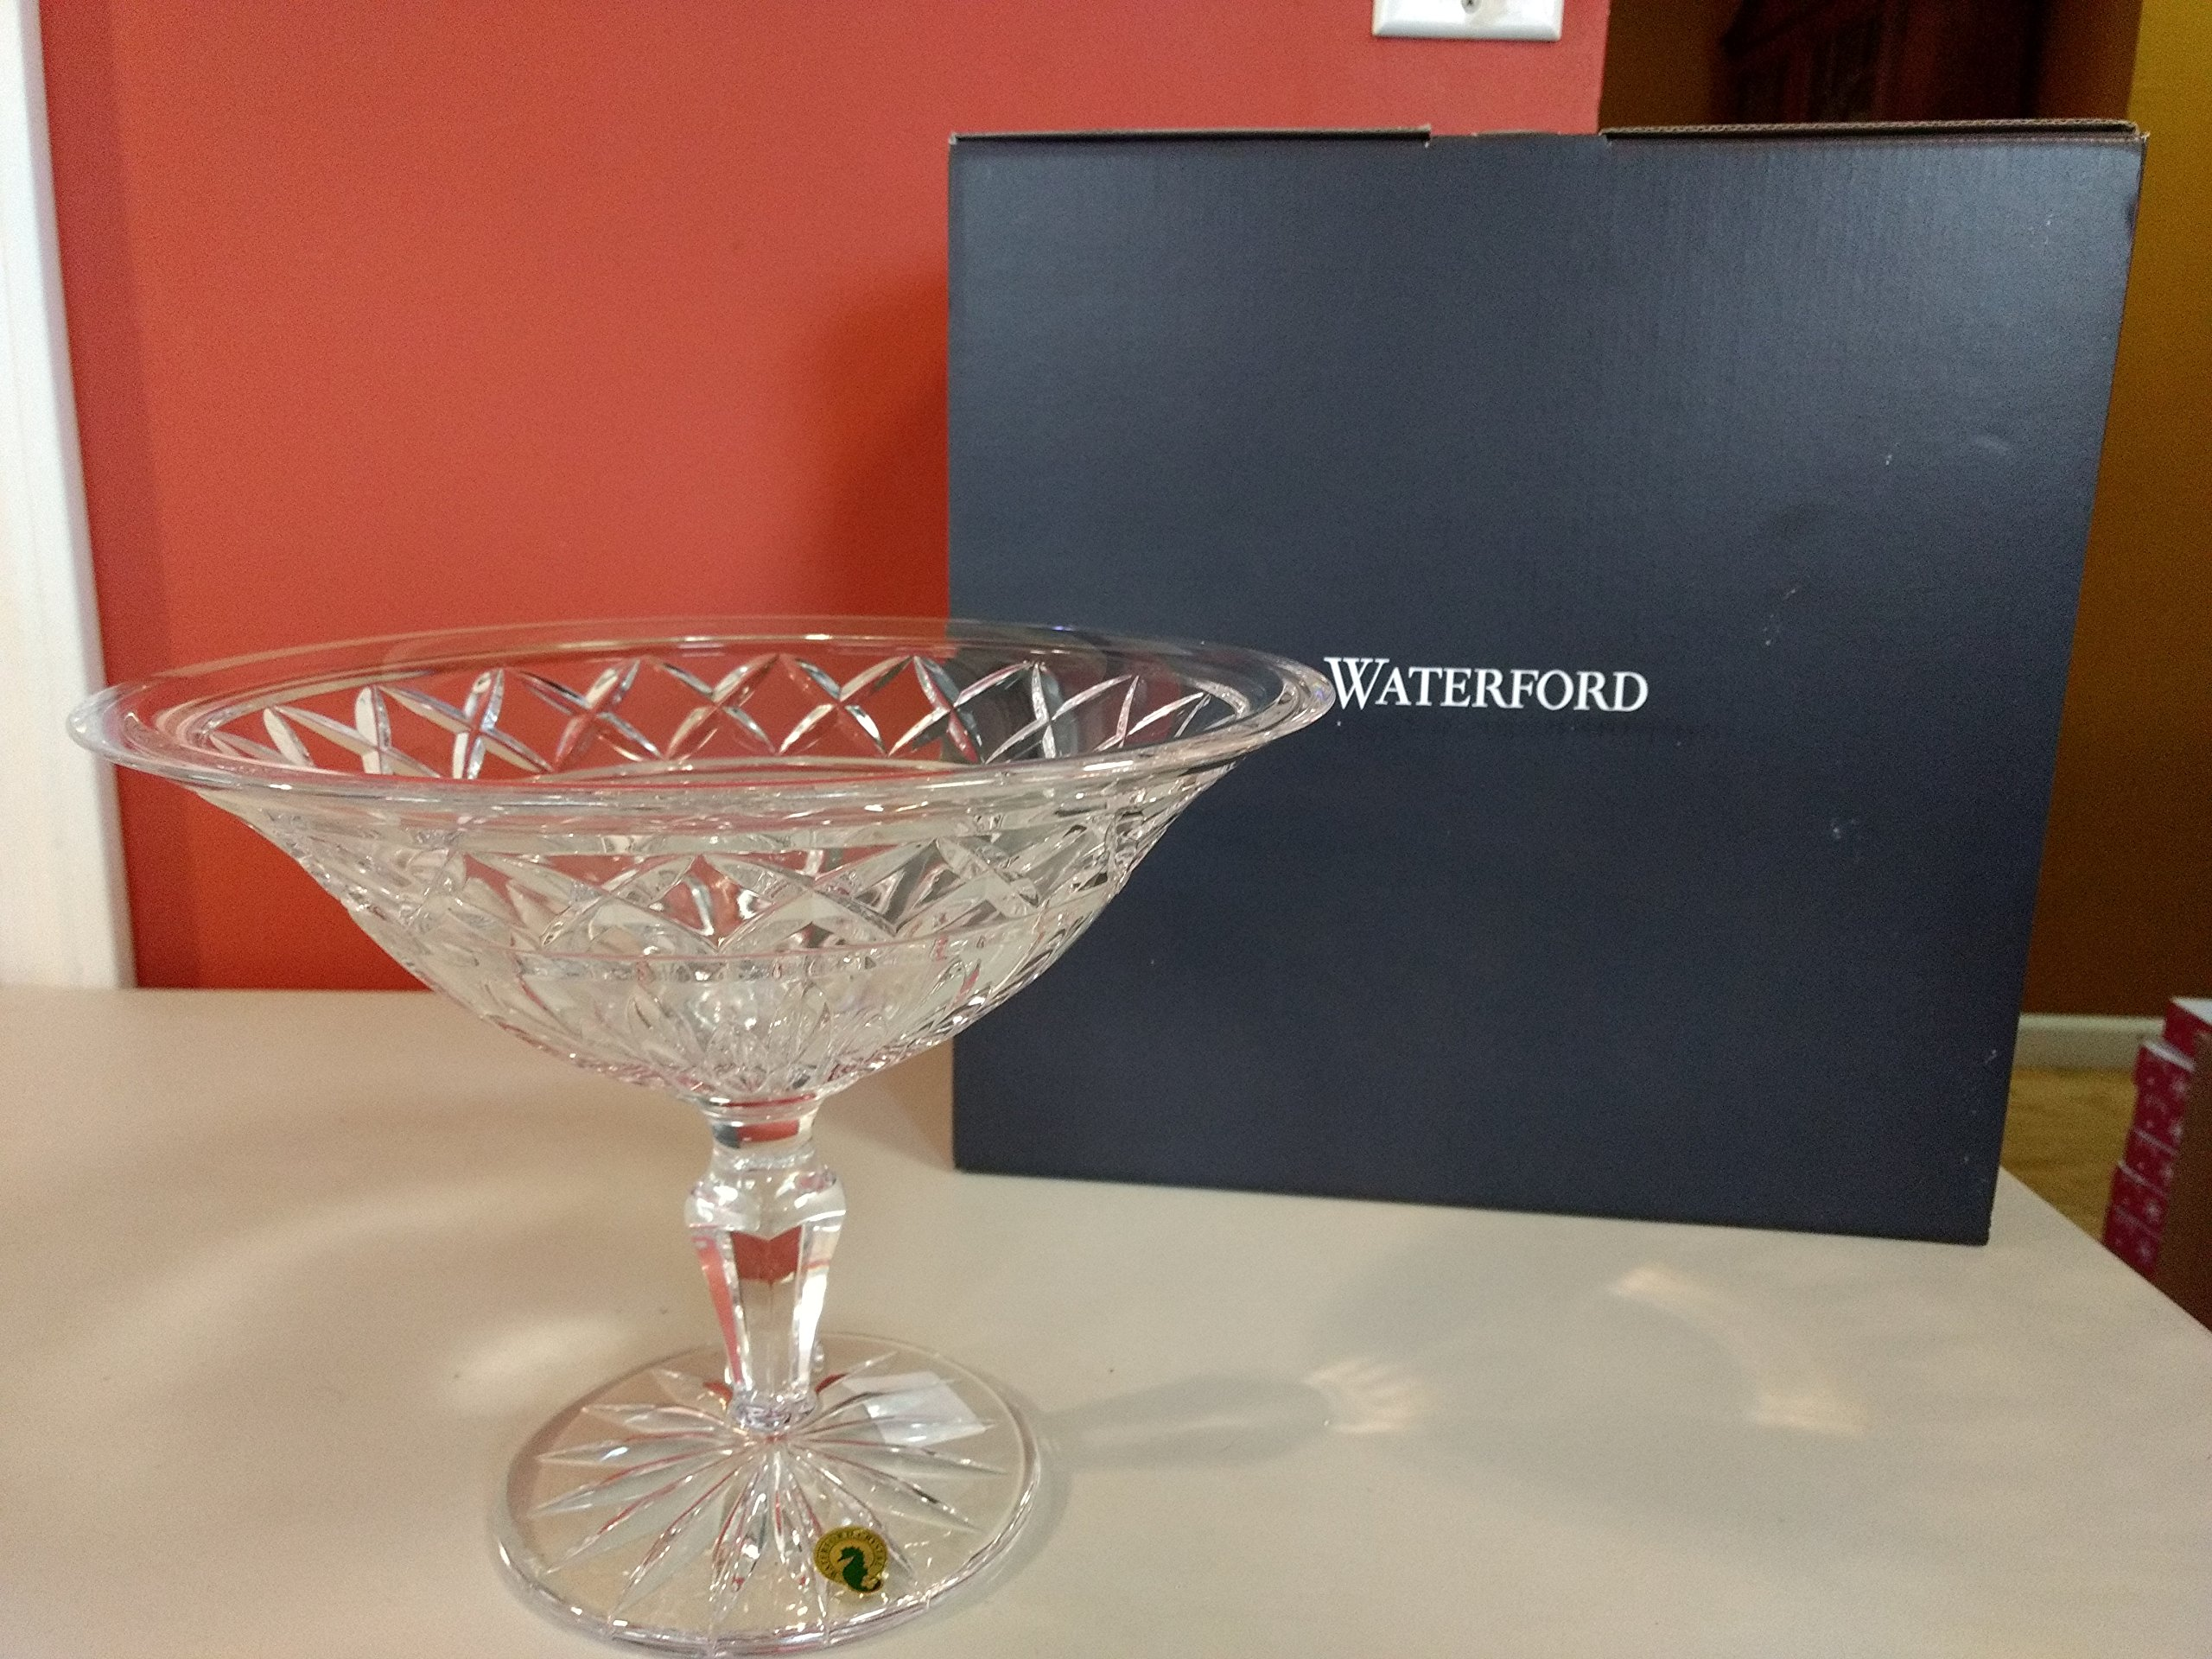 Waterford Heritage Footed Compote